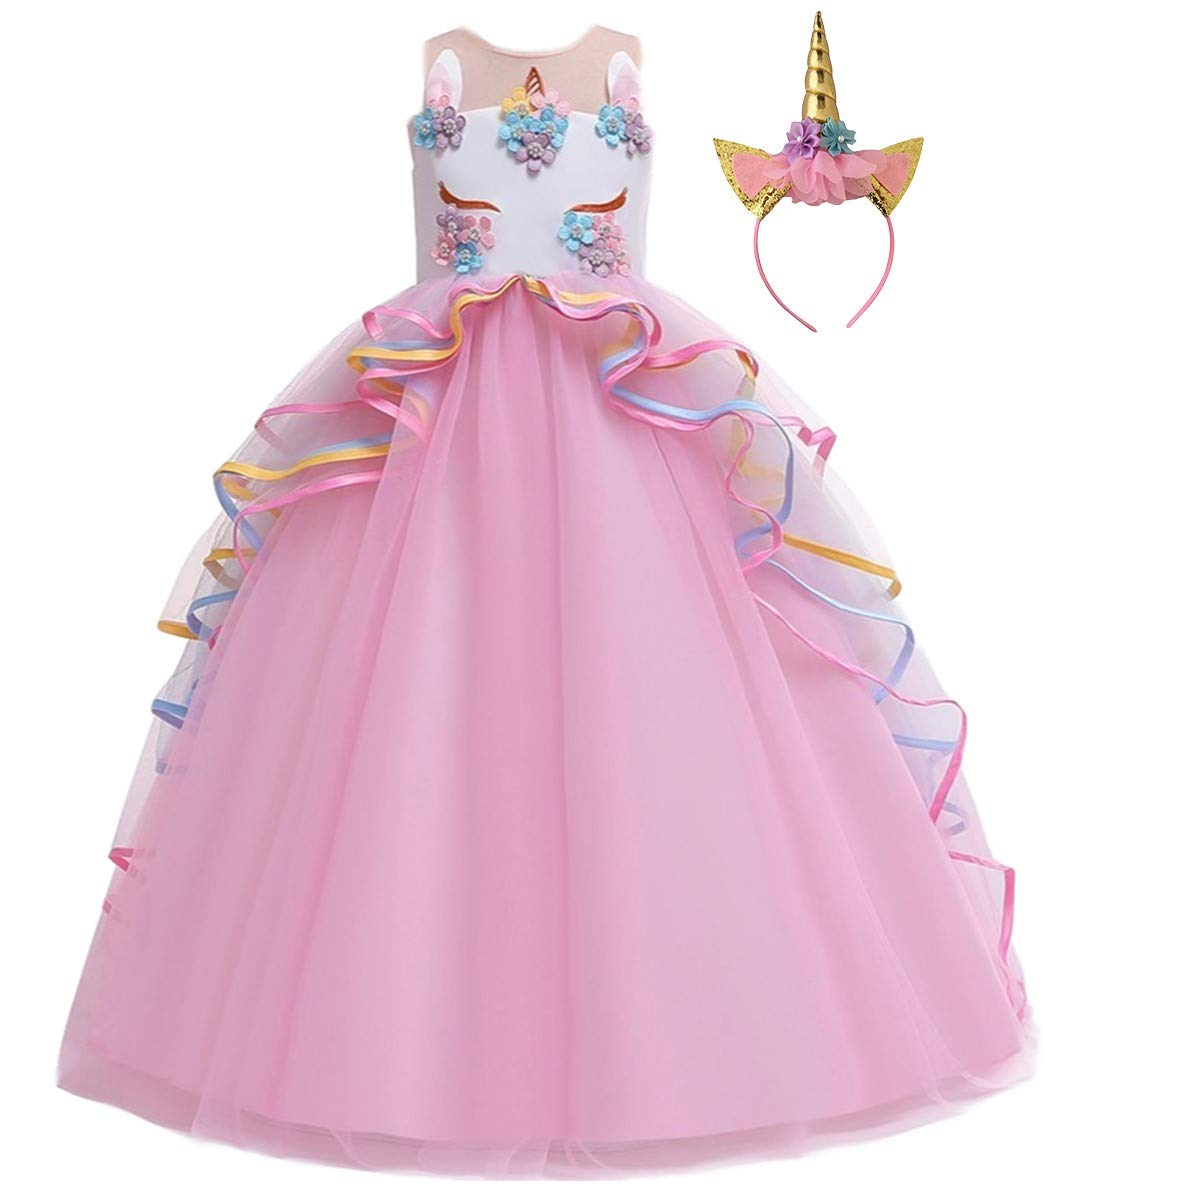 IZKIZF Girls Unicorn Costume Princess Maxi Tulle Birthday Party Carnival Outfits